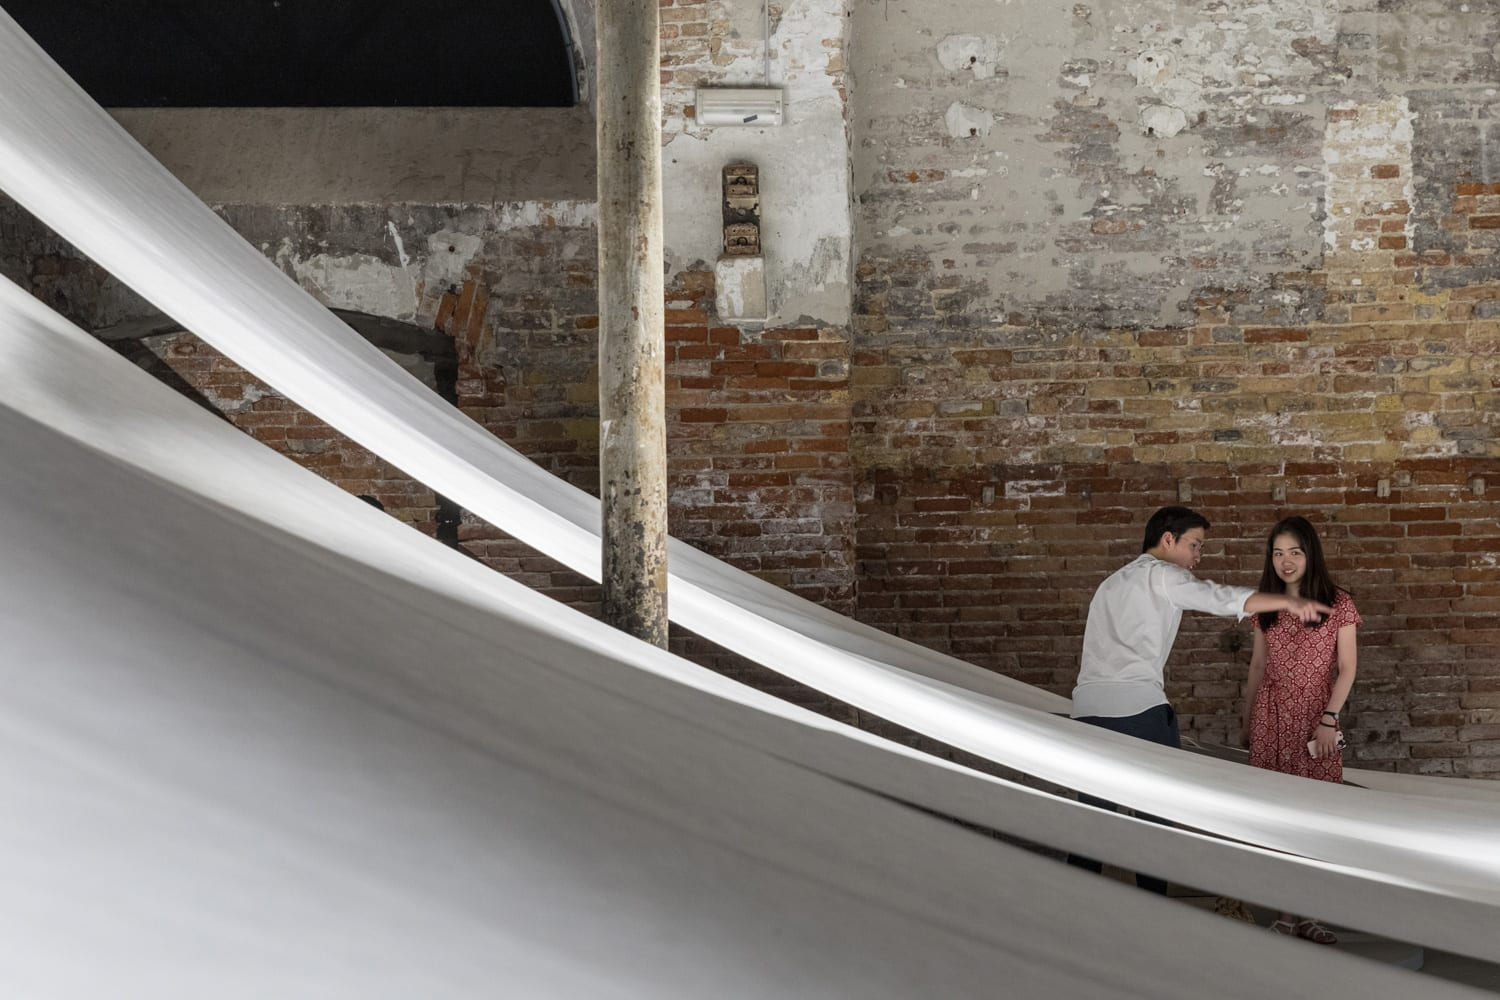 Sunyata The Poetics of Emptiness at The Indonesian Pavilion, Venice Architecture Biennale 2018 | Yellowtrace